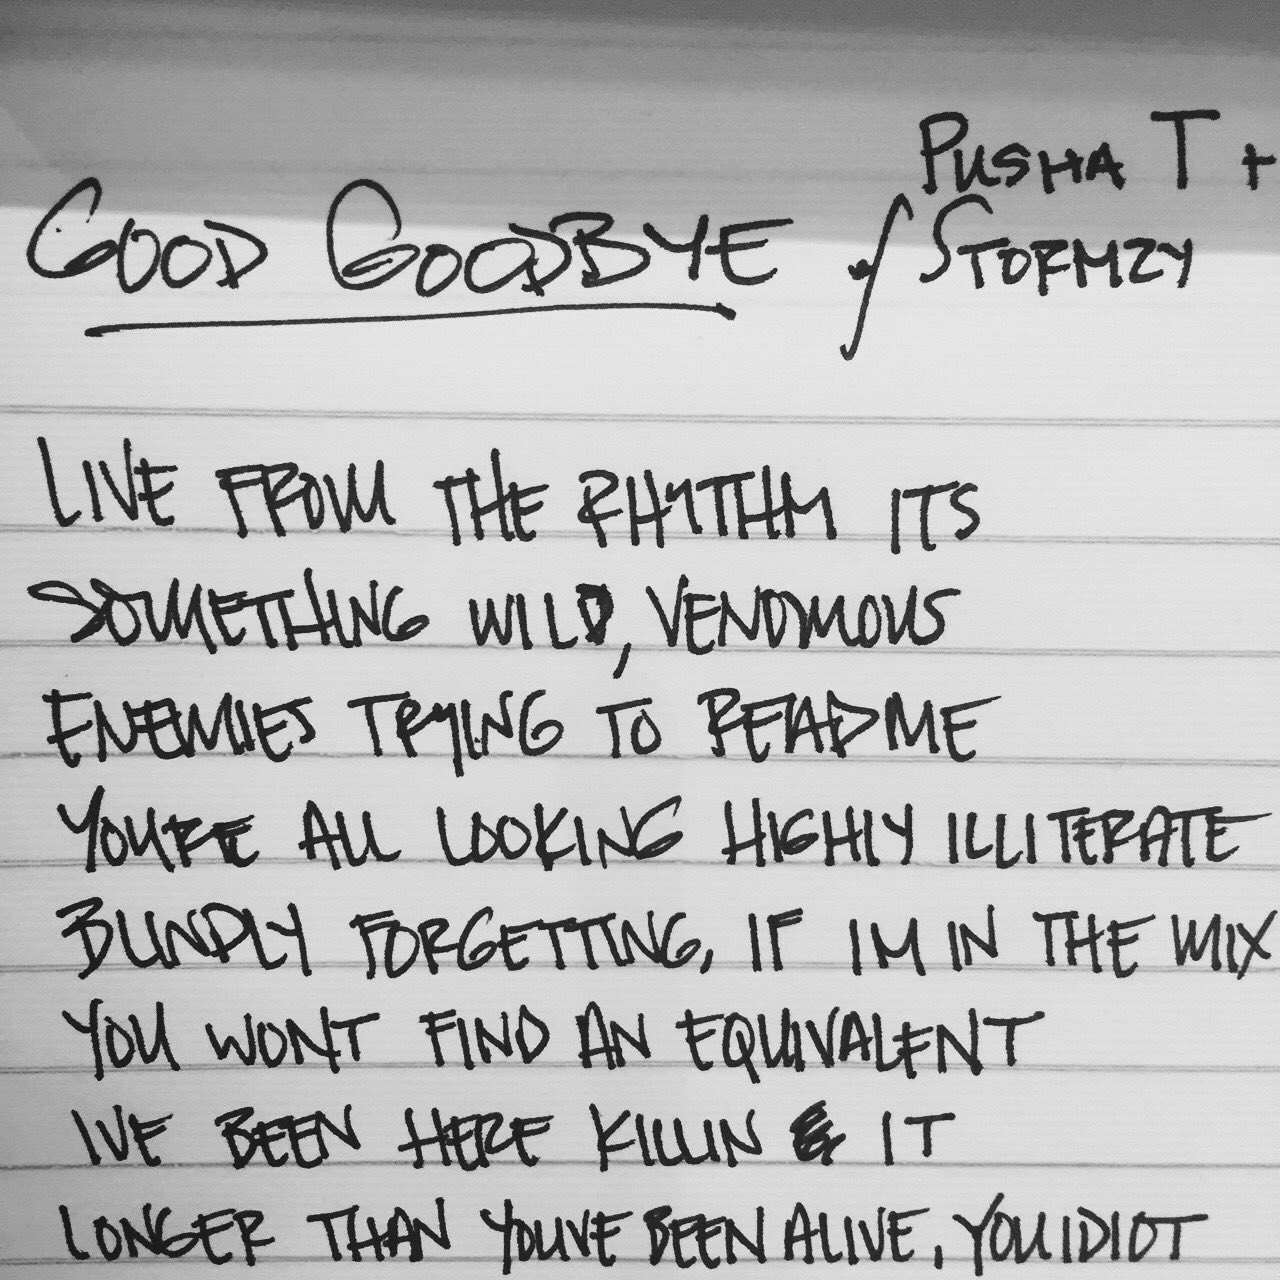 #GoodGoodbye lyric premiere on @Genius: https://t.co/5NrJQV8ich @PUSHA_T @Stormzy1 https://t.co/1aSFCN1bdF